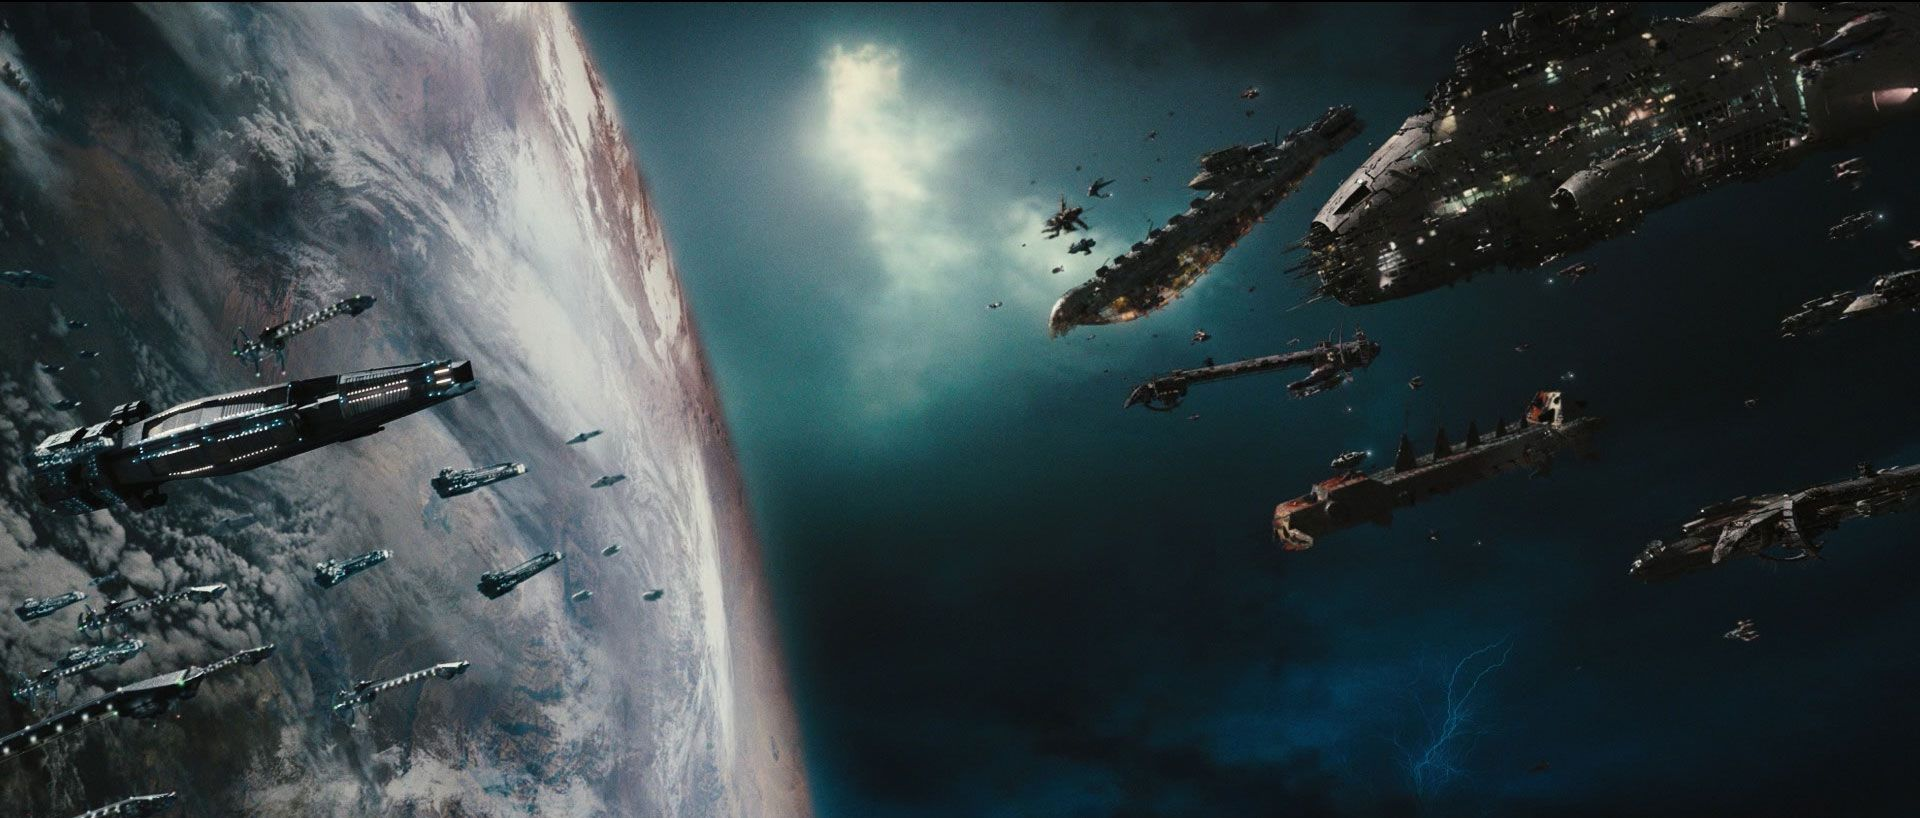 Space Battle Wallpapers To Cover Your Desktop In Glory Space Battles Serenity Technology Wallpaper